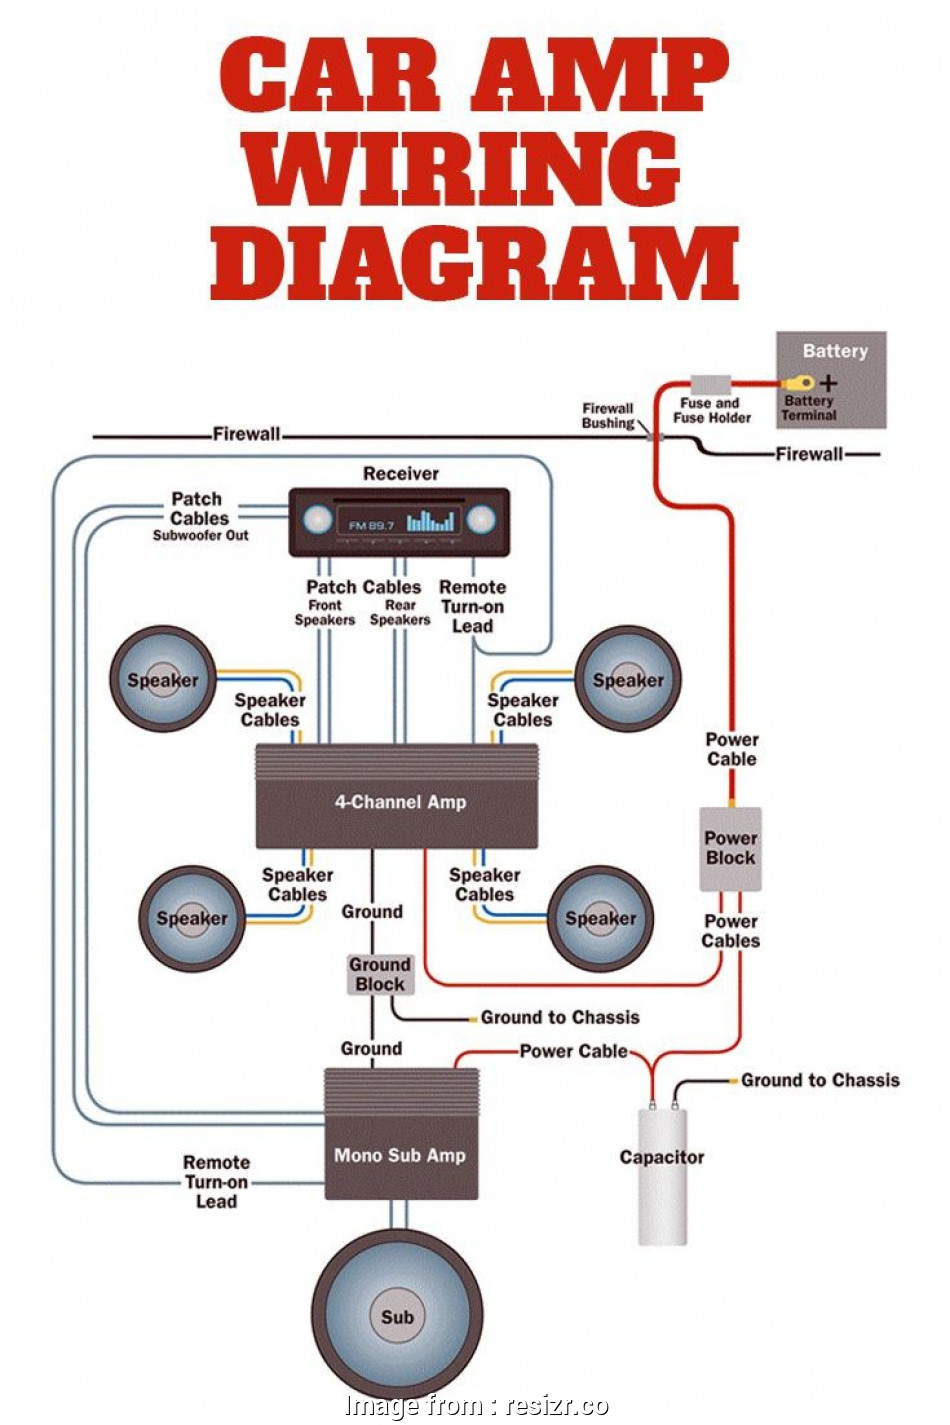 crutchfield radio wiring diagrams Crutchfield Subwoofer Wiring Diagram This Simplified Shows, A Full Blown, Audio System Upgrade S 18 Practical Crutchfield Radio Wiring Diagrams Photos